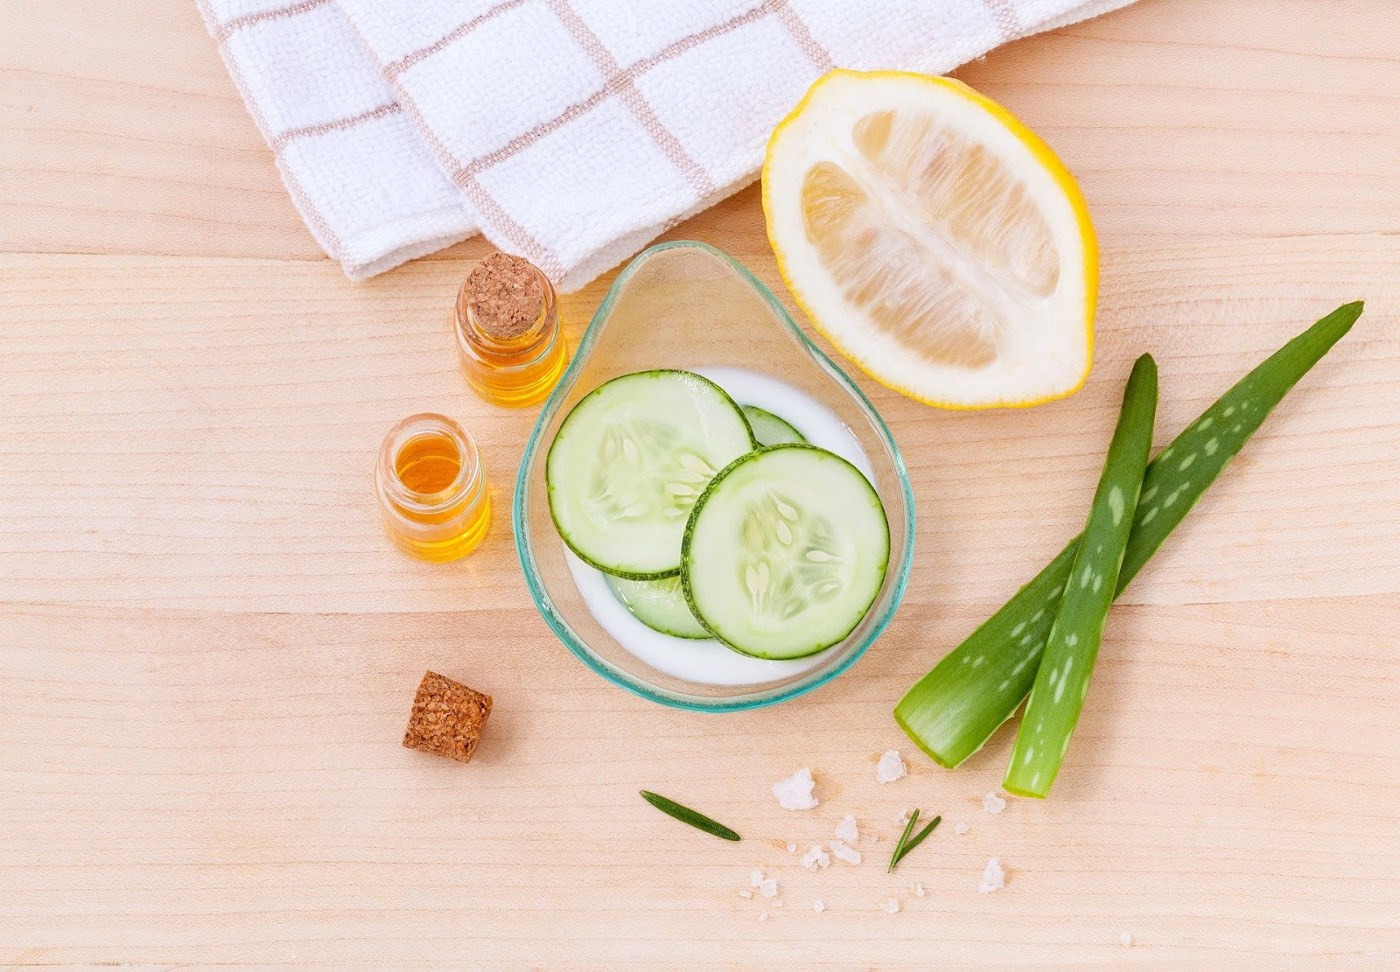 Skincare items with lemon cucumber slices and aloe vera with face oils